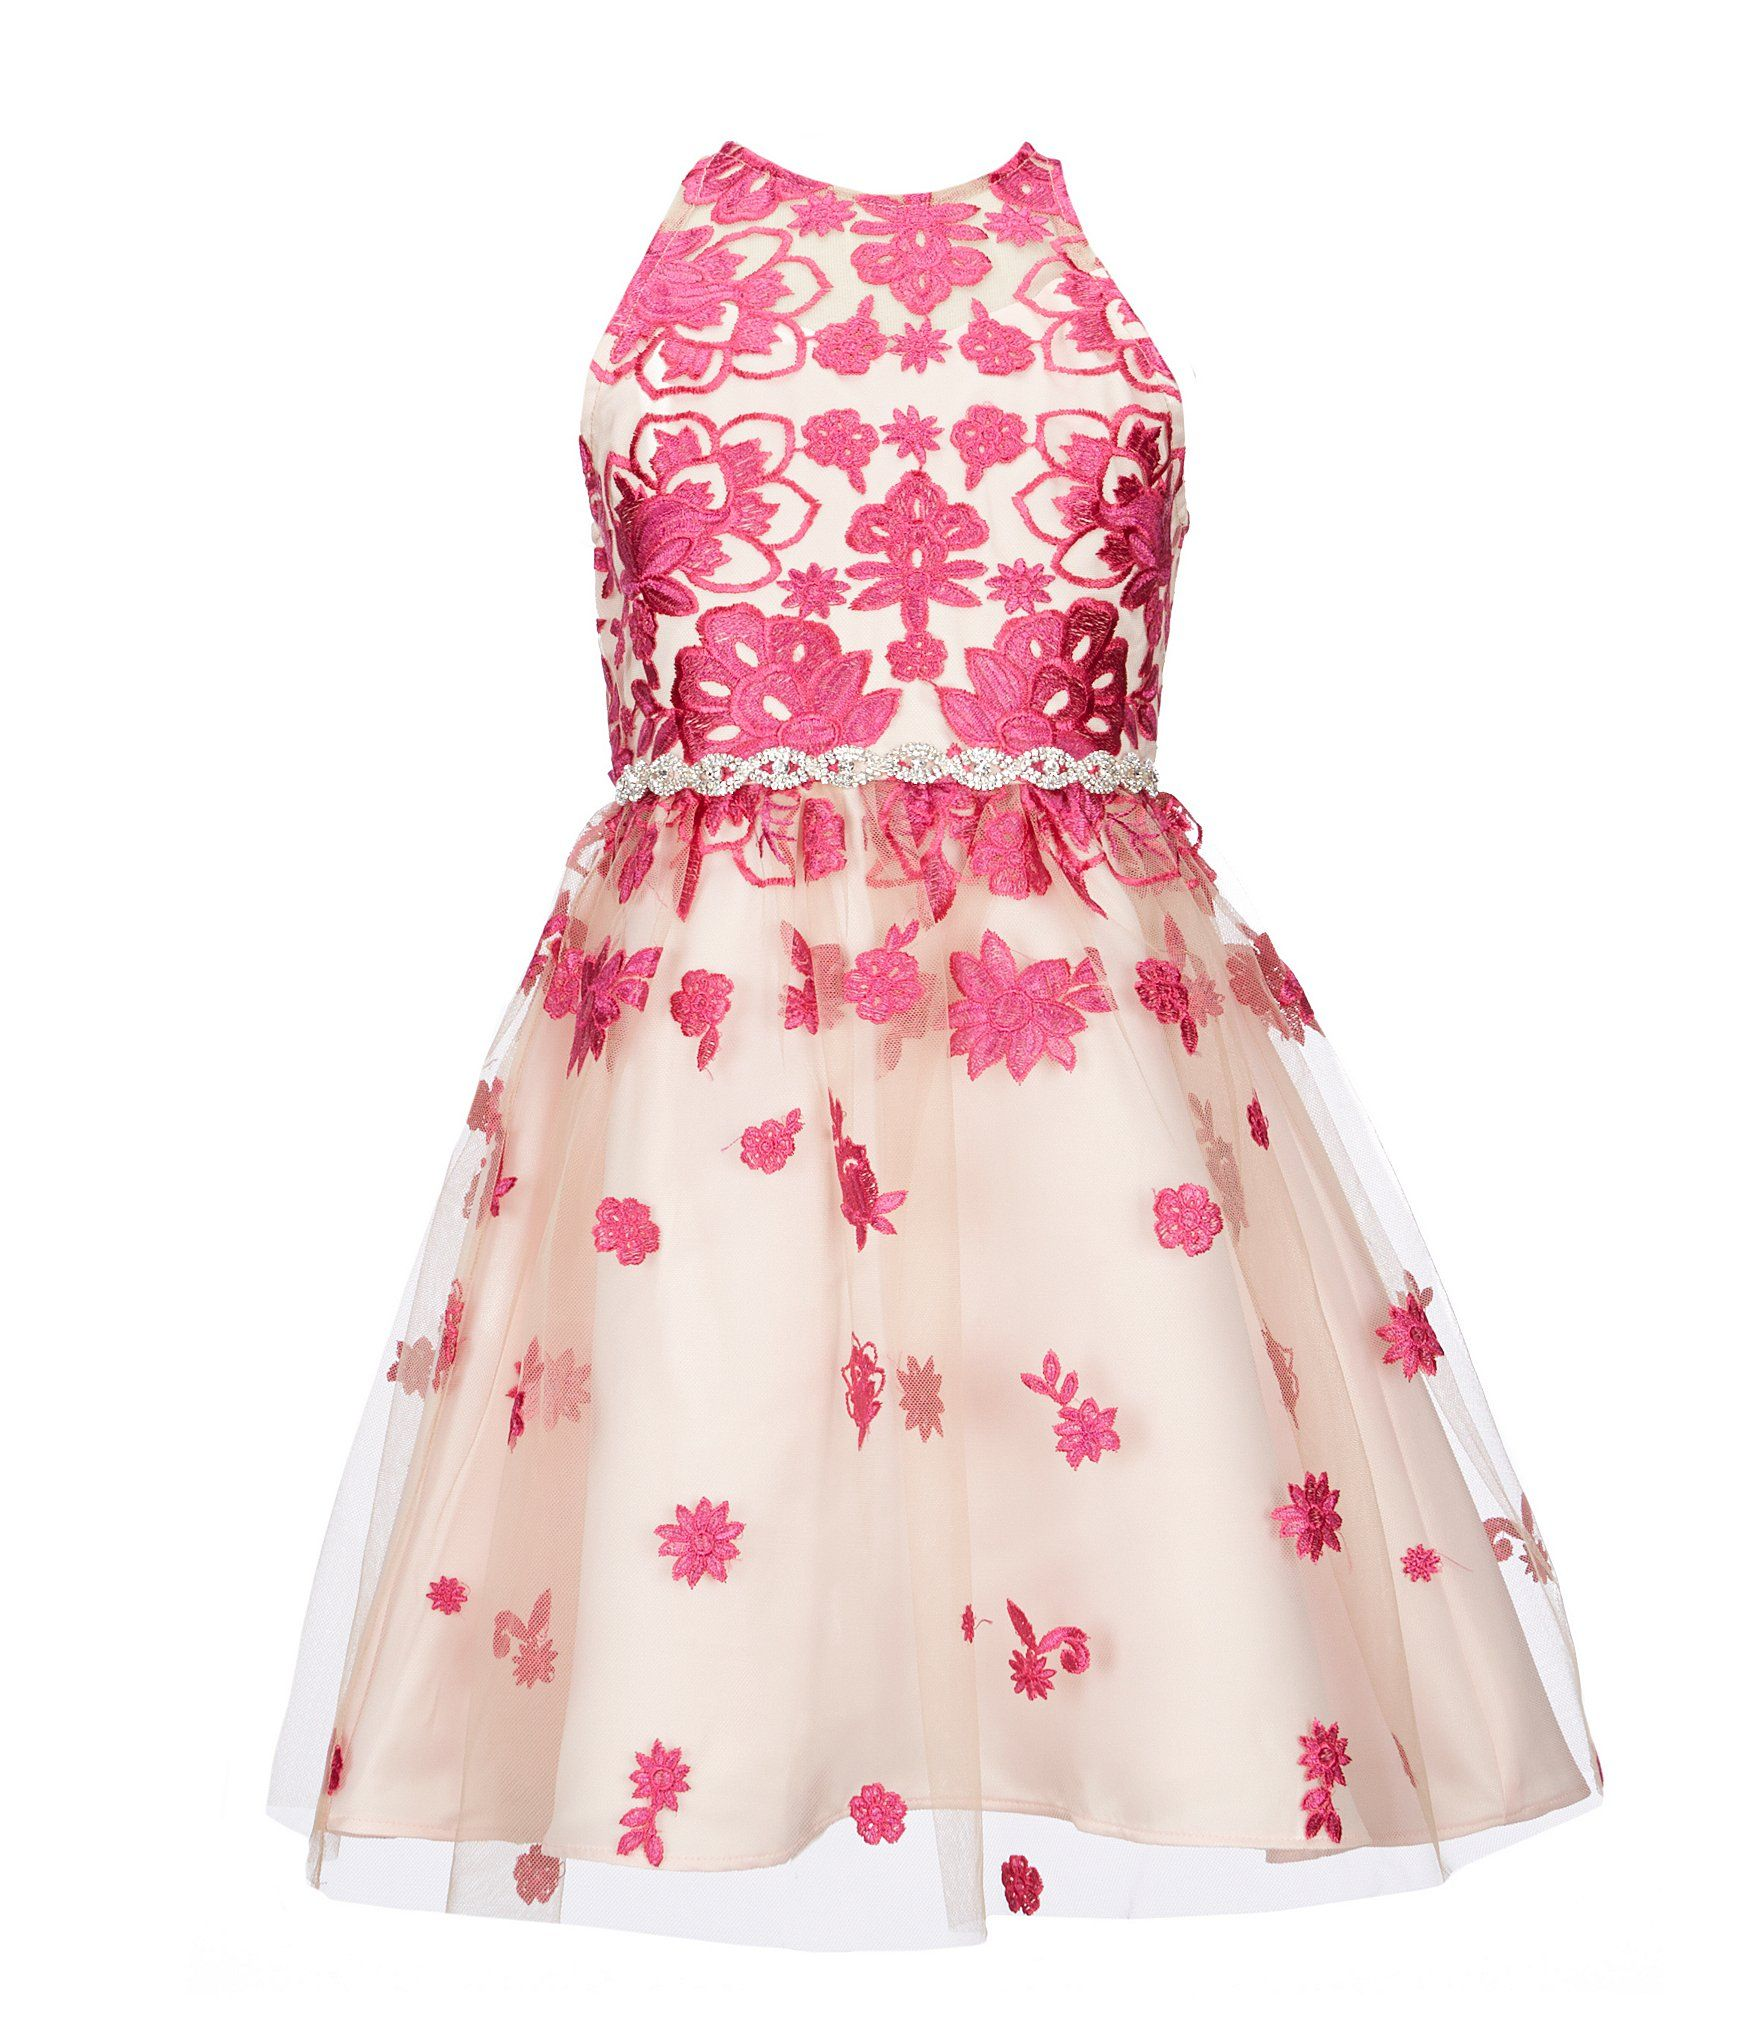 7b2029b156a Shop for Rare Editions Big Girls 7-16 Scattered-Embroidered A-Line Dress at  Dillards.com. Visit Dillards.com to find clothing